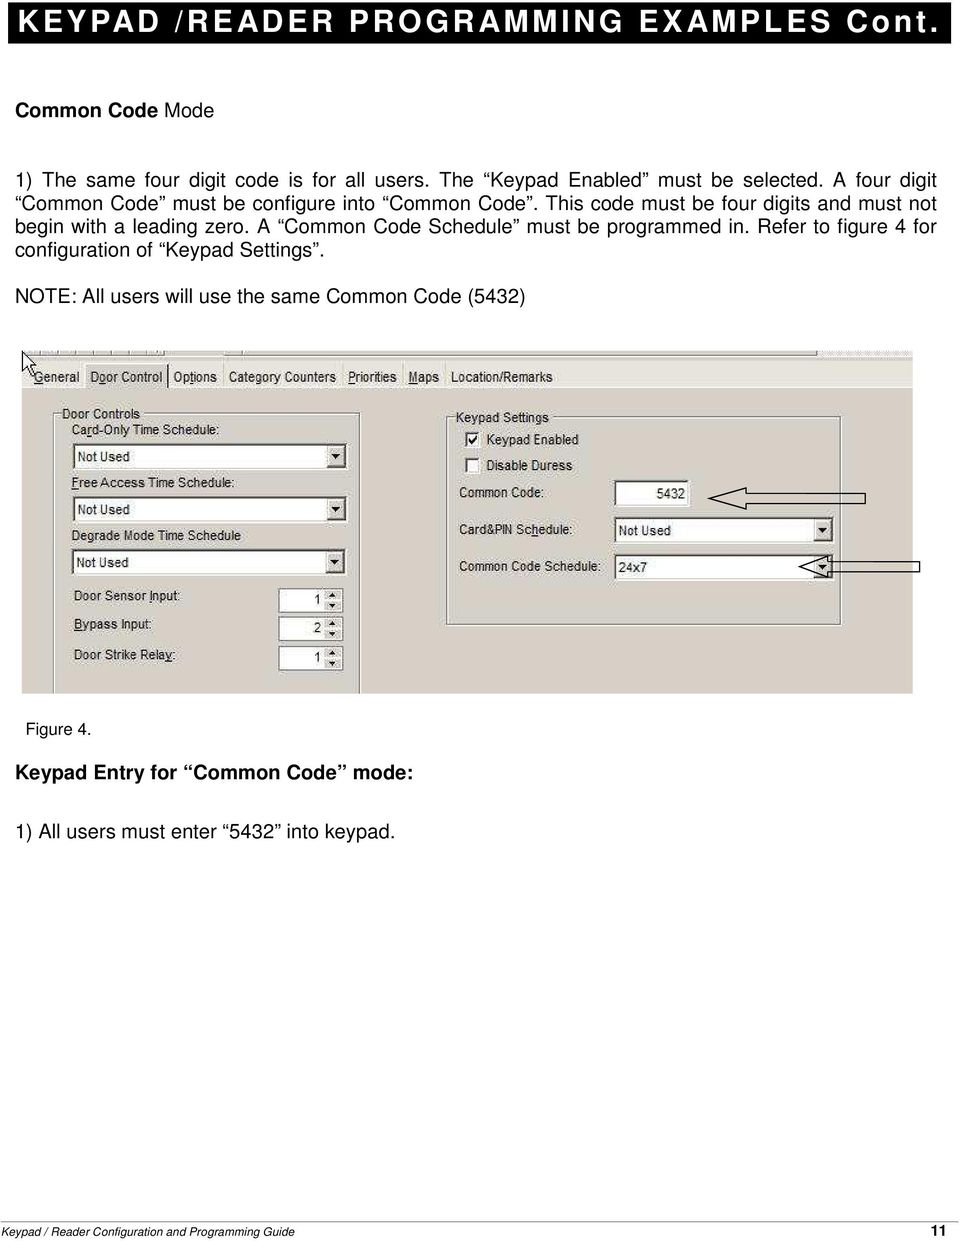 Keypad / Reader Configuration and Programming Guide - PDF on troubleshooting diagram, assembly diagram, instrumentation diagram, electricians diagram, rslogix diagram, panel wiring icon, drilling diagram, solar panels diagram, plc diagram, telecommunications diagram, grounding diagram, installation diagram,